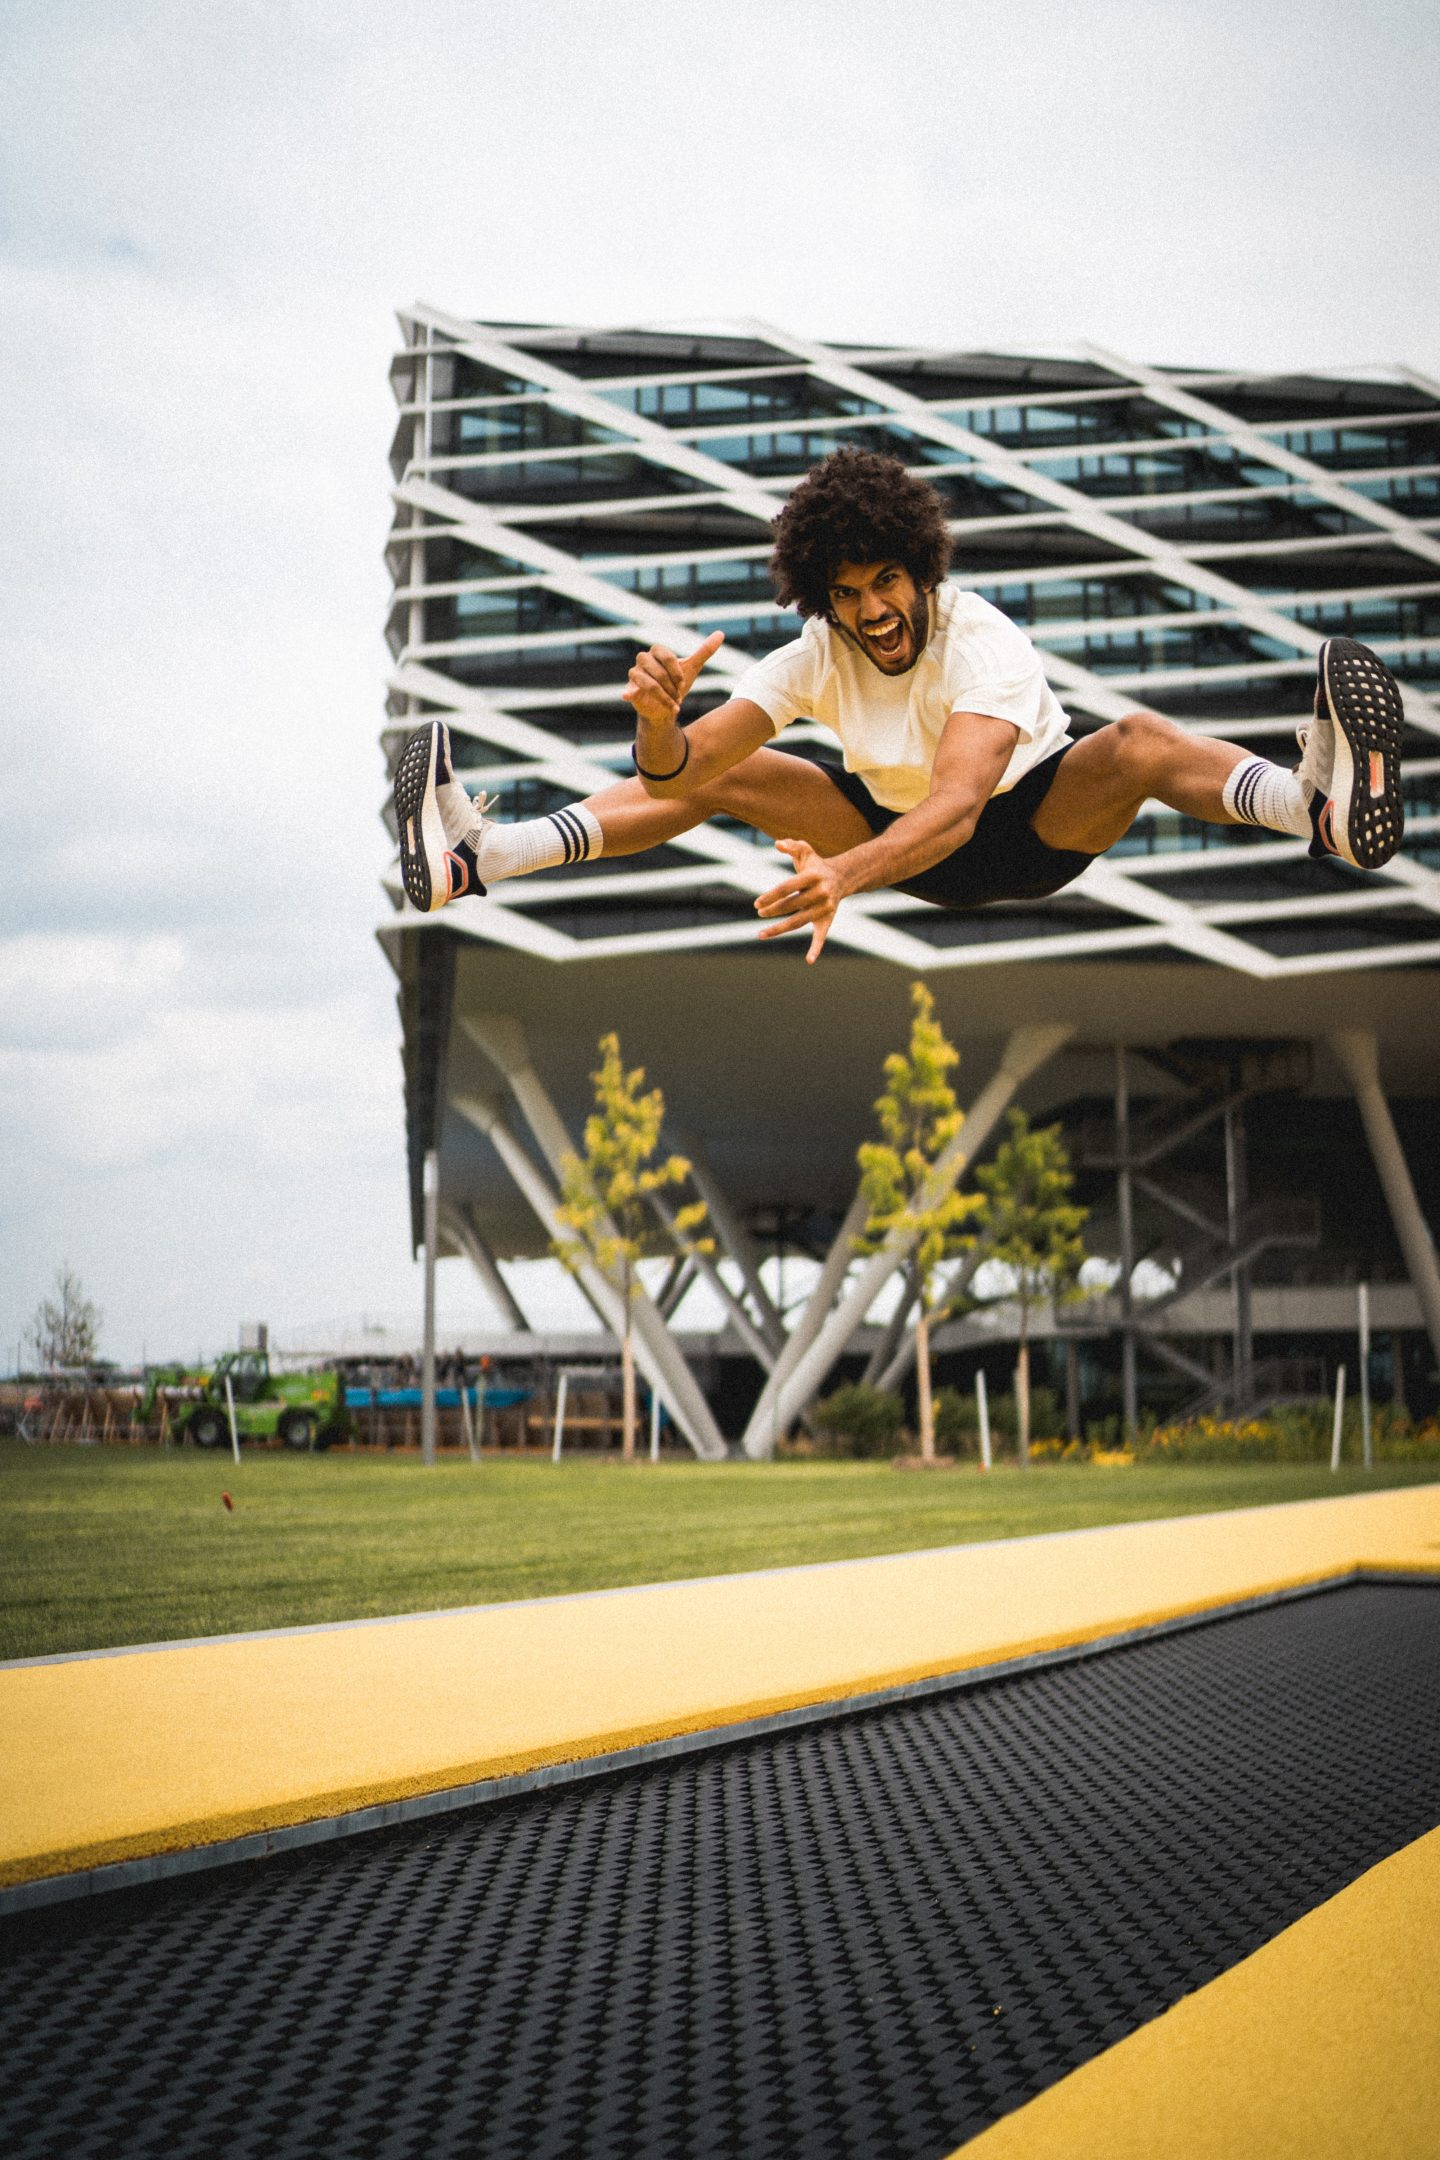 Adidas runners captain with sneakers afro jumping on trampoline showing diversity in the workplace culture at adidas headquarters Herzogenaurach